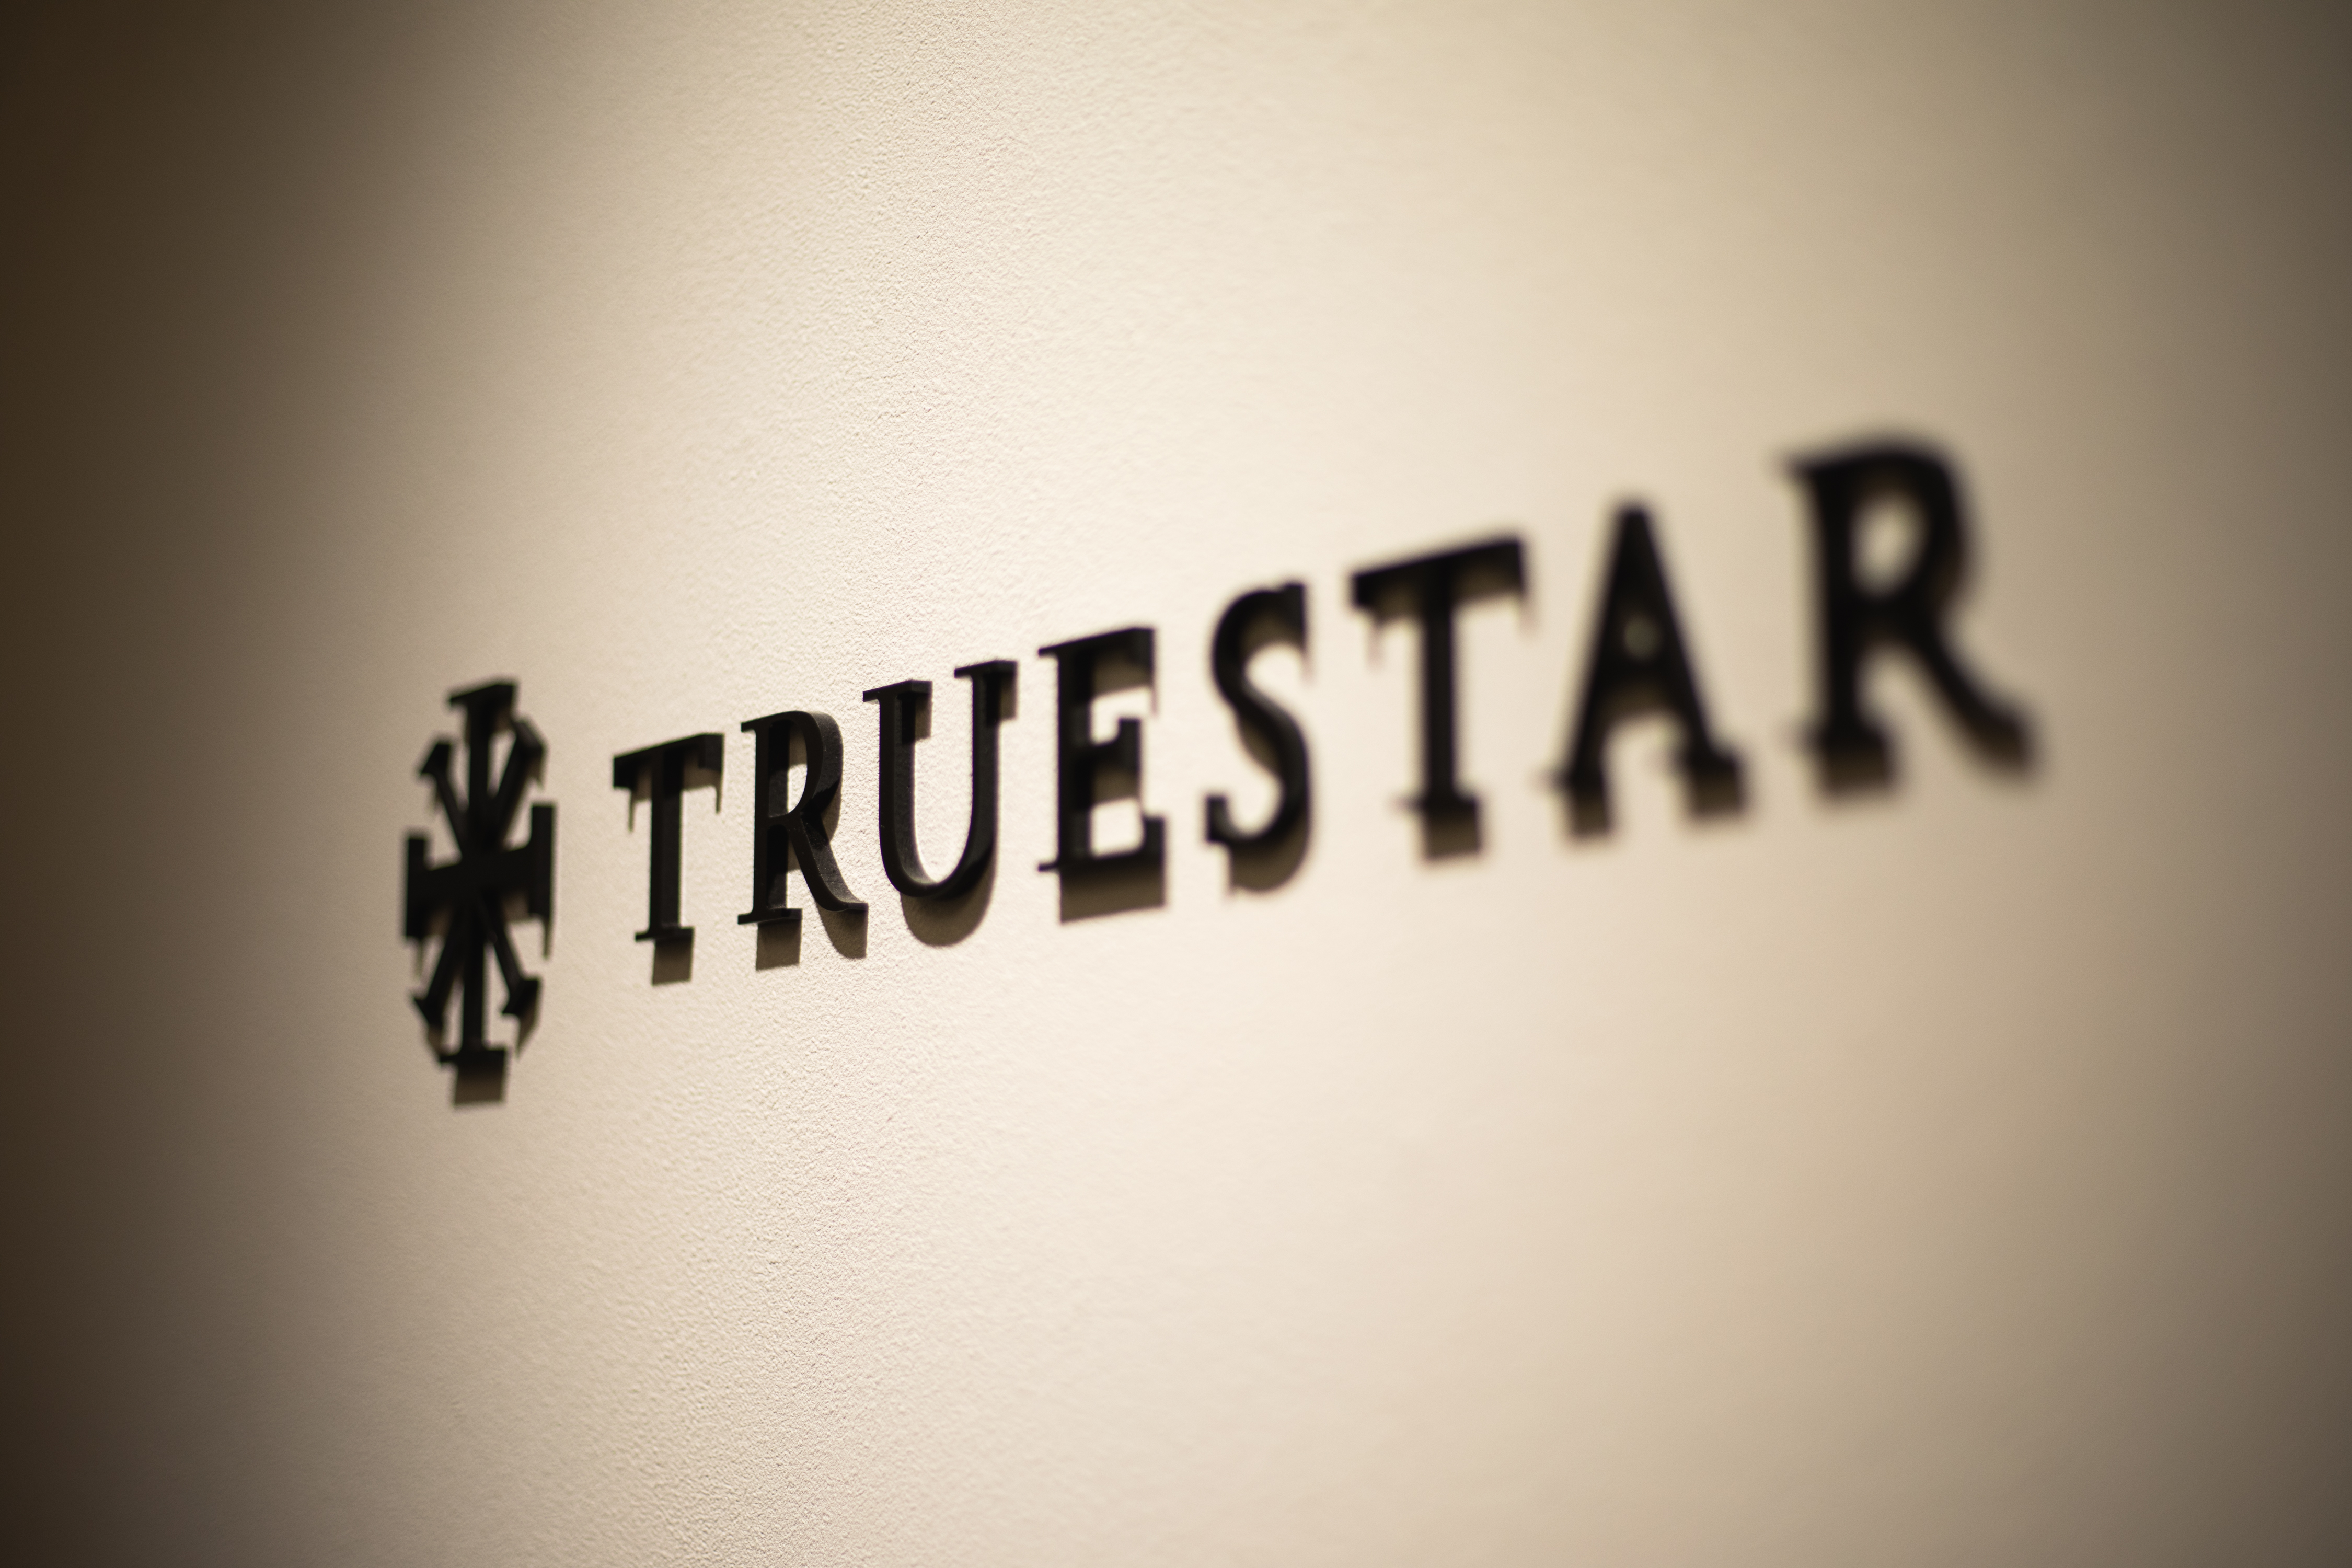 Truestar Consulting Group 株式会社